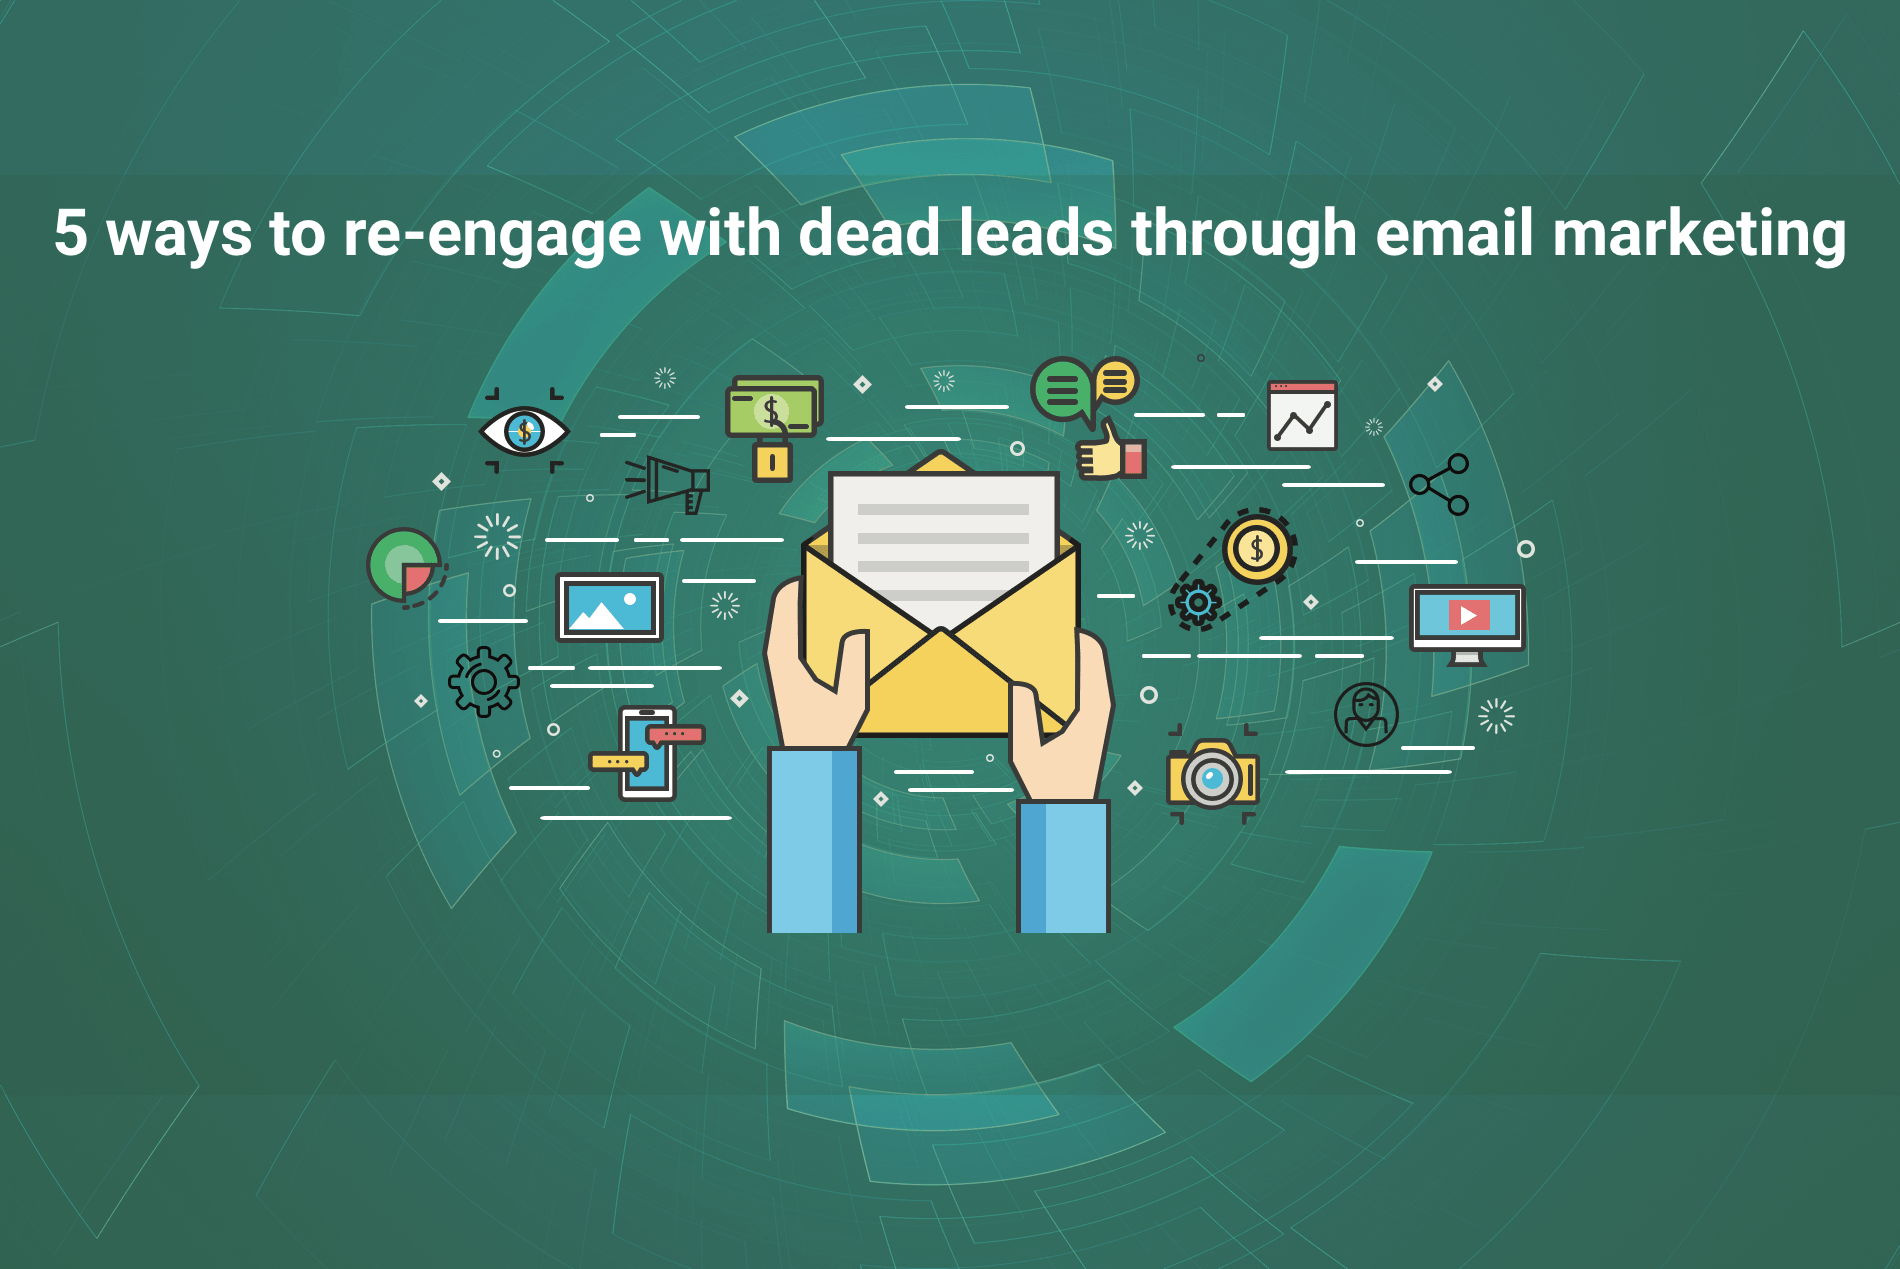 5 Ways to Re-engage With Dead Leads With Email Marketing